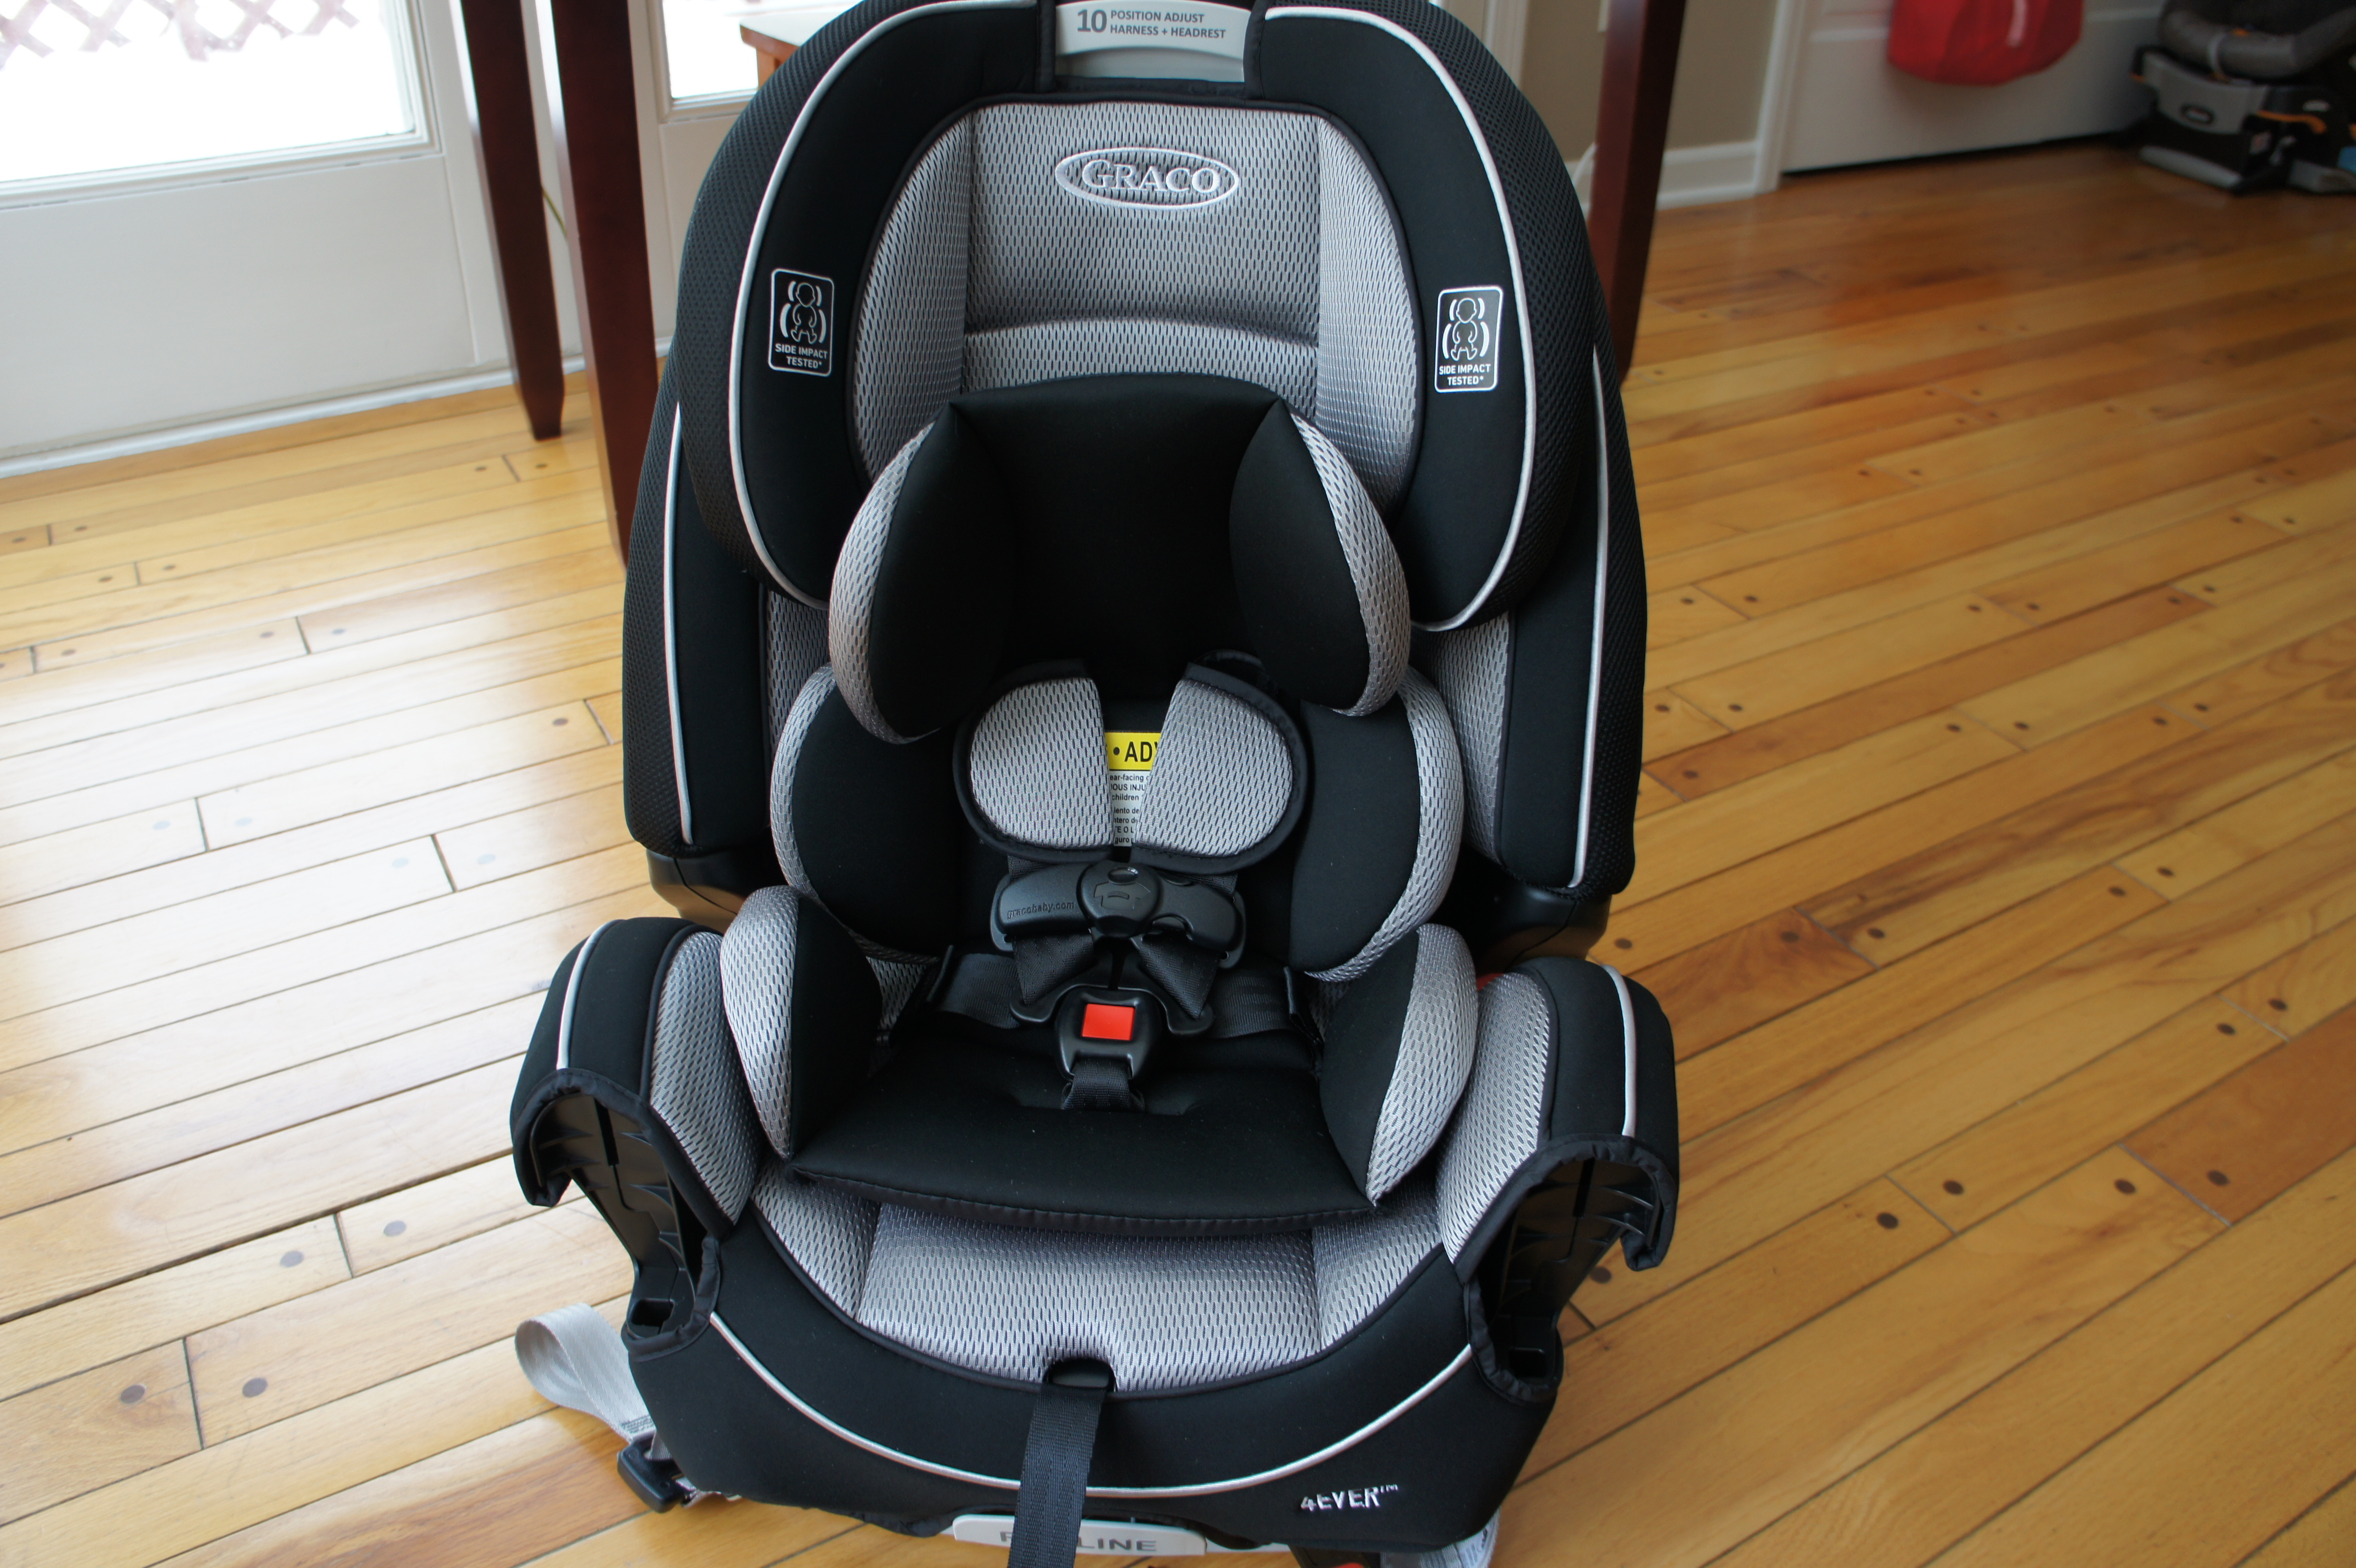 Parts for car seats likewise graco replacement parts for car -  Be Putting An Infant In Sitting Straight Up They Can T Sit Up Duh Or Facing Forward Using The 6 Position Recliner Adjustment You Easily Move The Seat